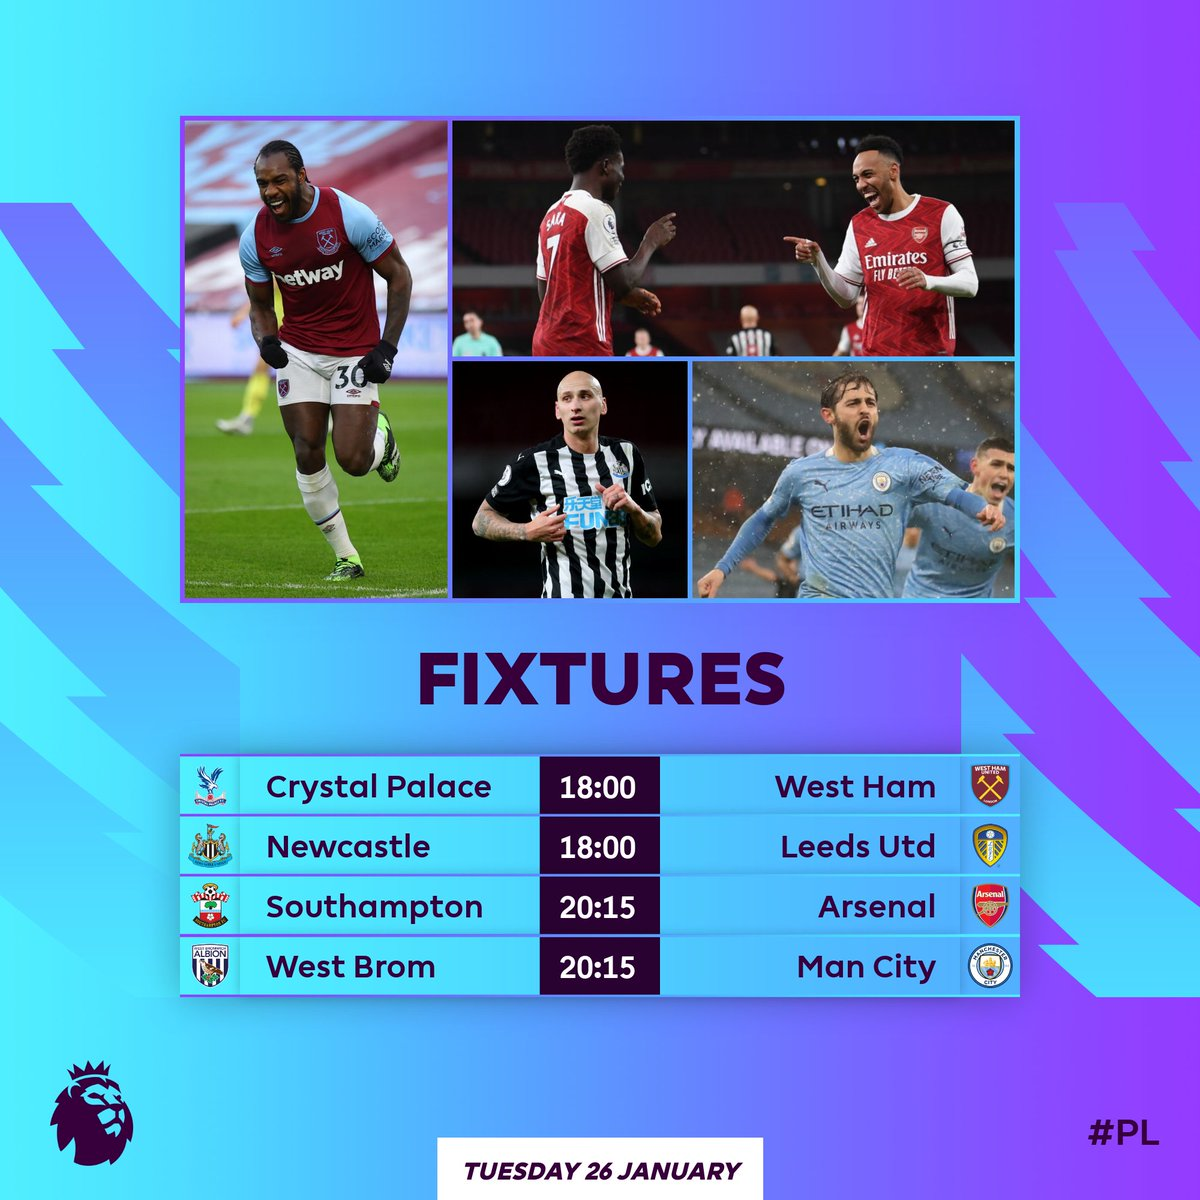 Kicking off a new Matchweek with 4️⃣ clashes 🙌